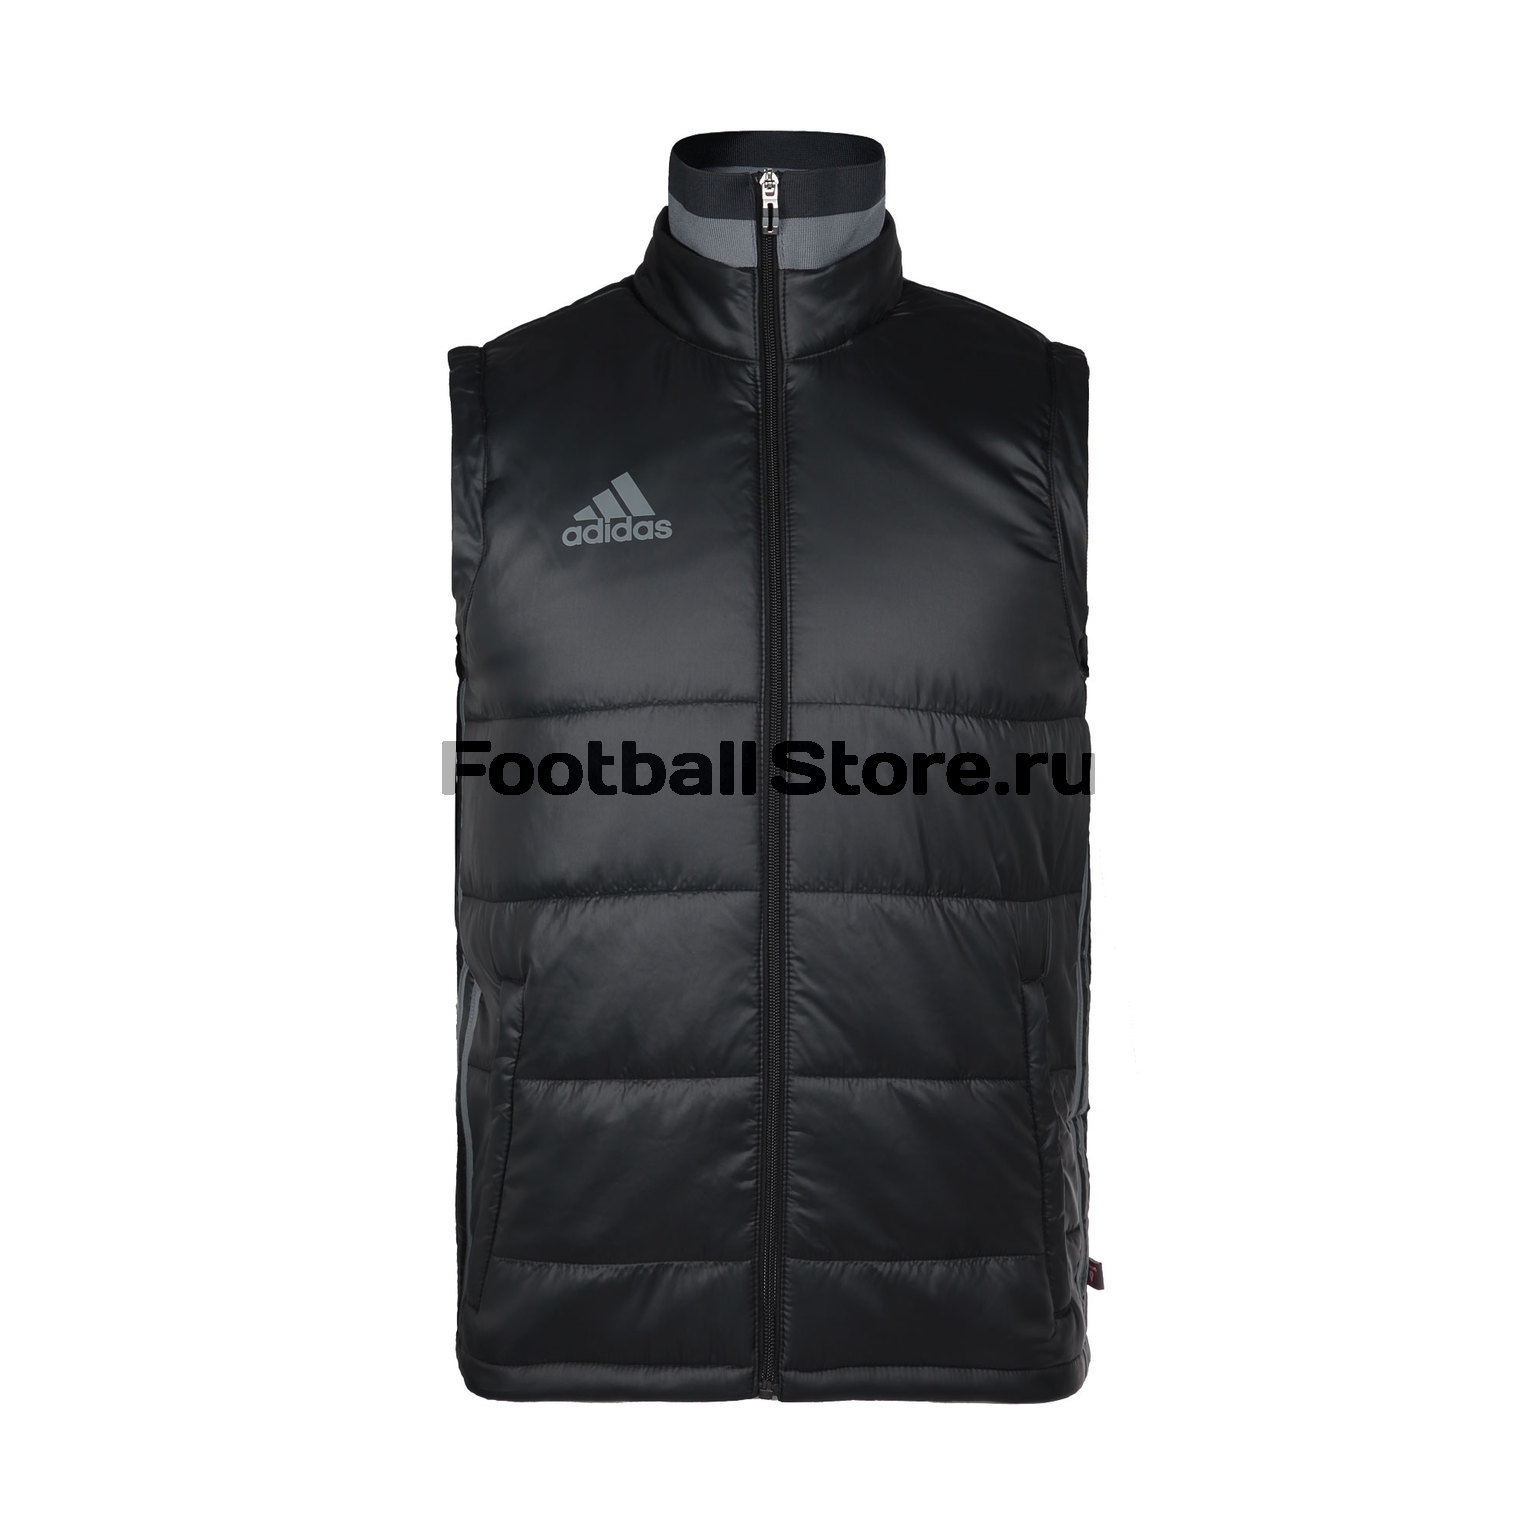 Жилет Adidas Con16 PAD Vest AN9872 600d waterproof outdoor airsoft strike vest nylon material molle carrier vest protect body keep safe thick elastic tactical vest